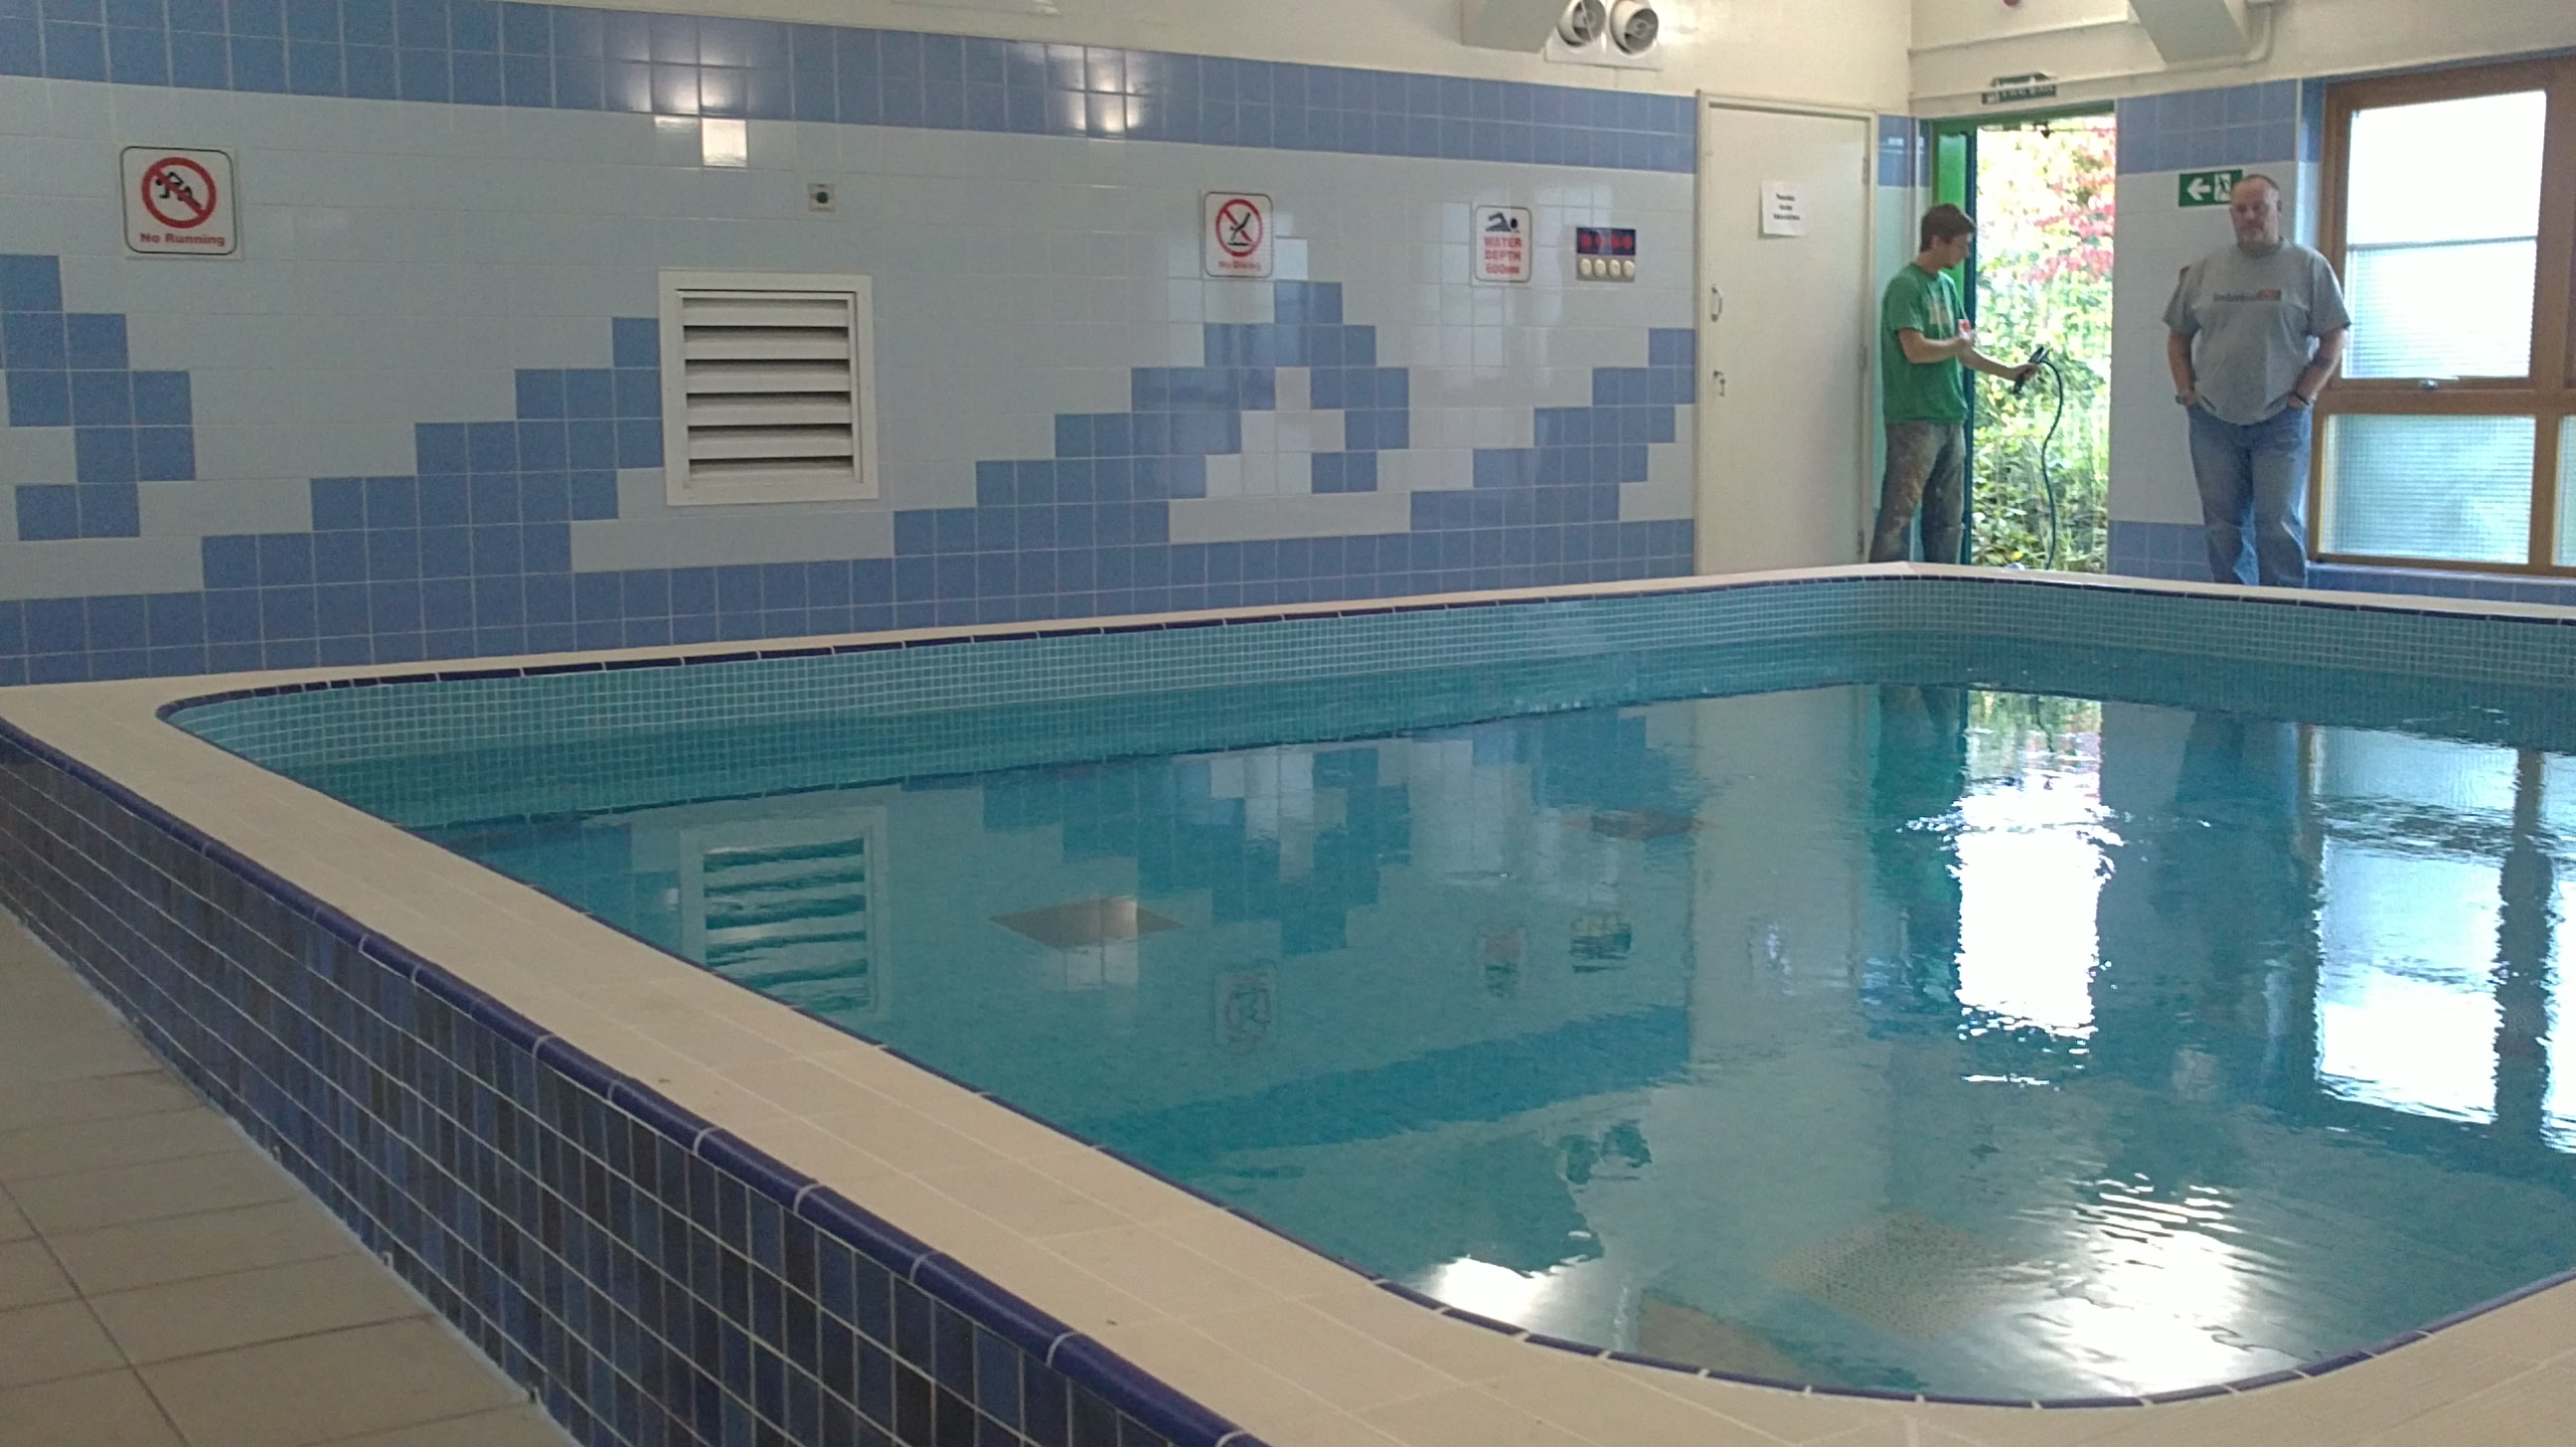 Swimming Pool Maintenance, Filtration Installation & Cleaning at Pool Maintenance ltd